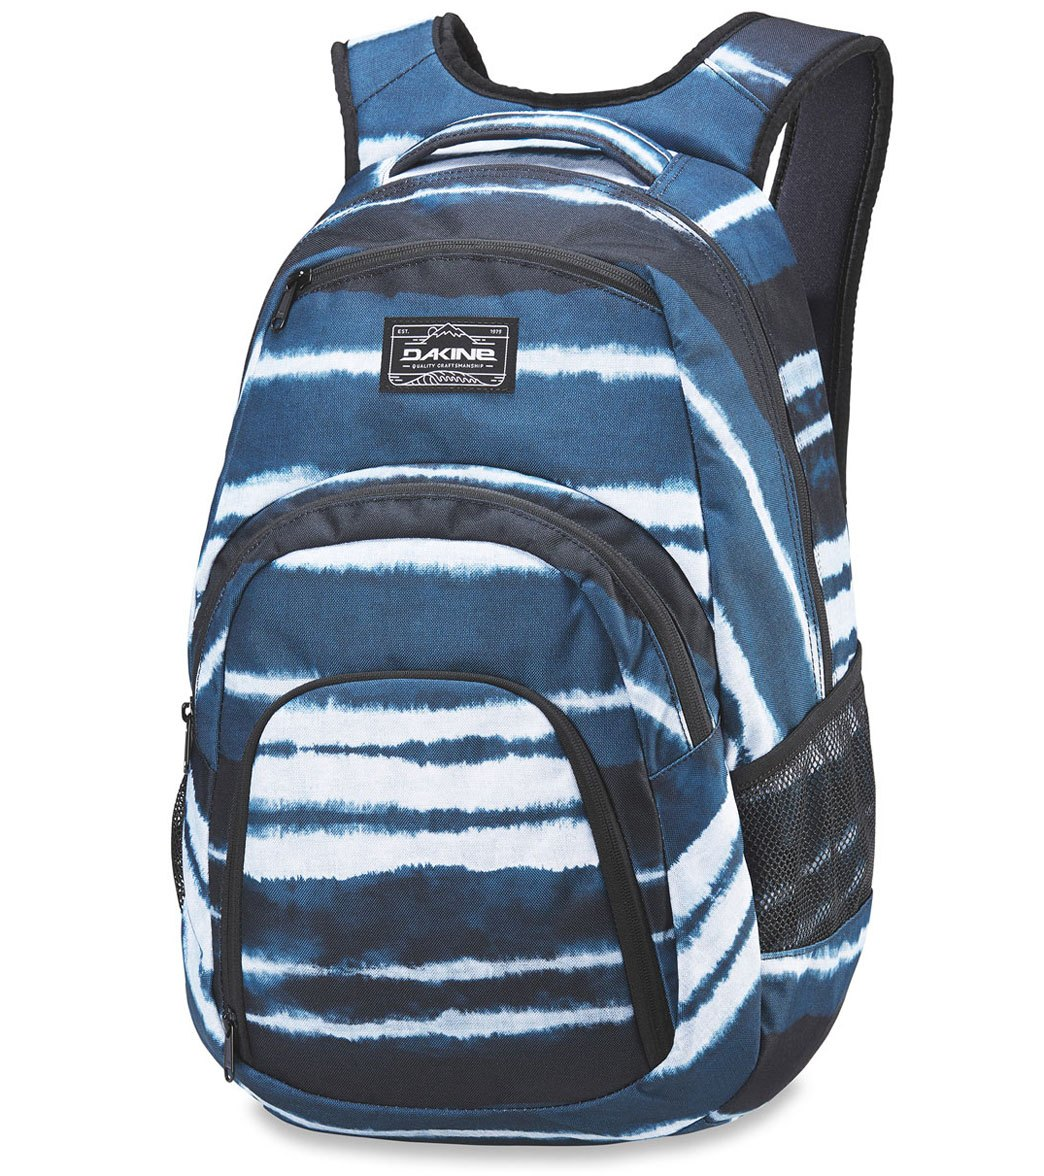 Dakine Campus 33L Backpack at SwimOutlet.com - Free Shipping 1db05dce1a